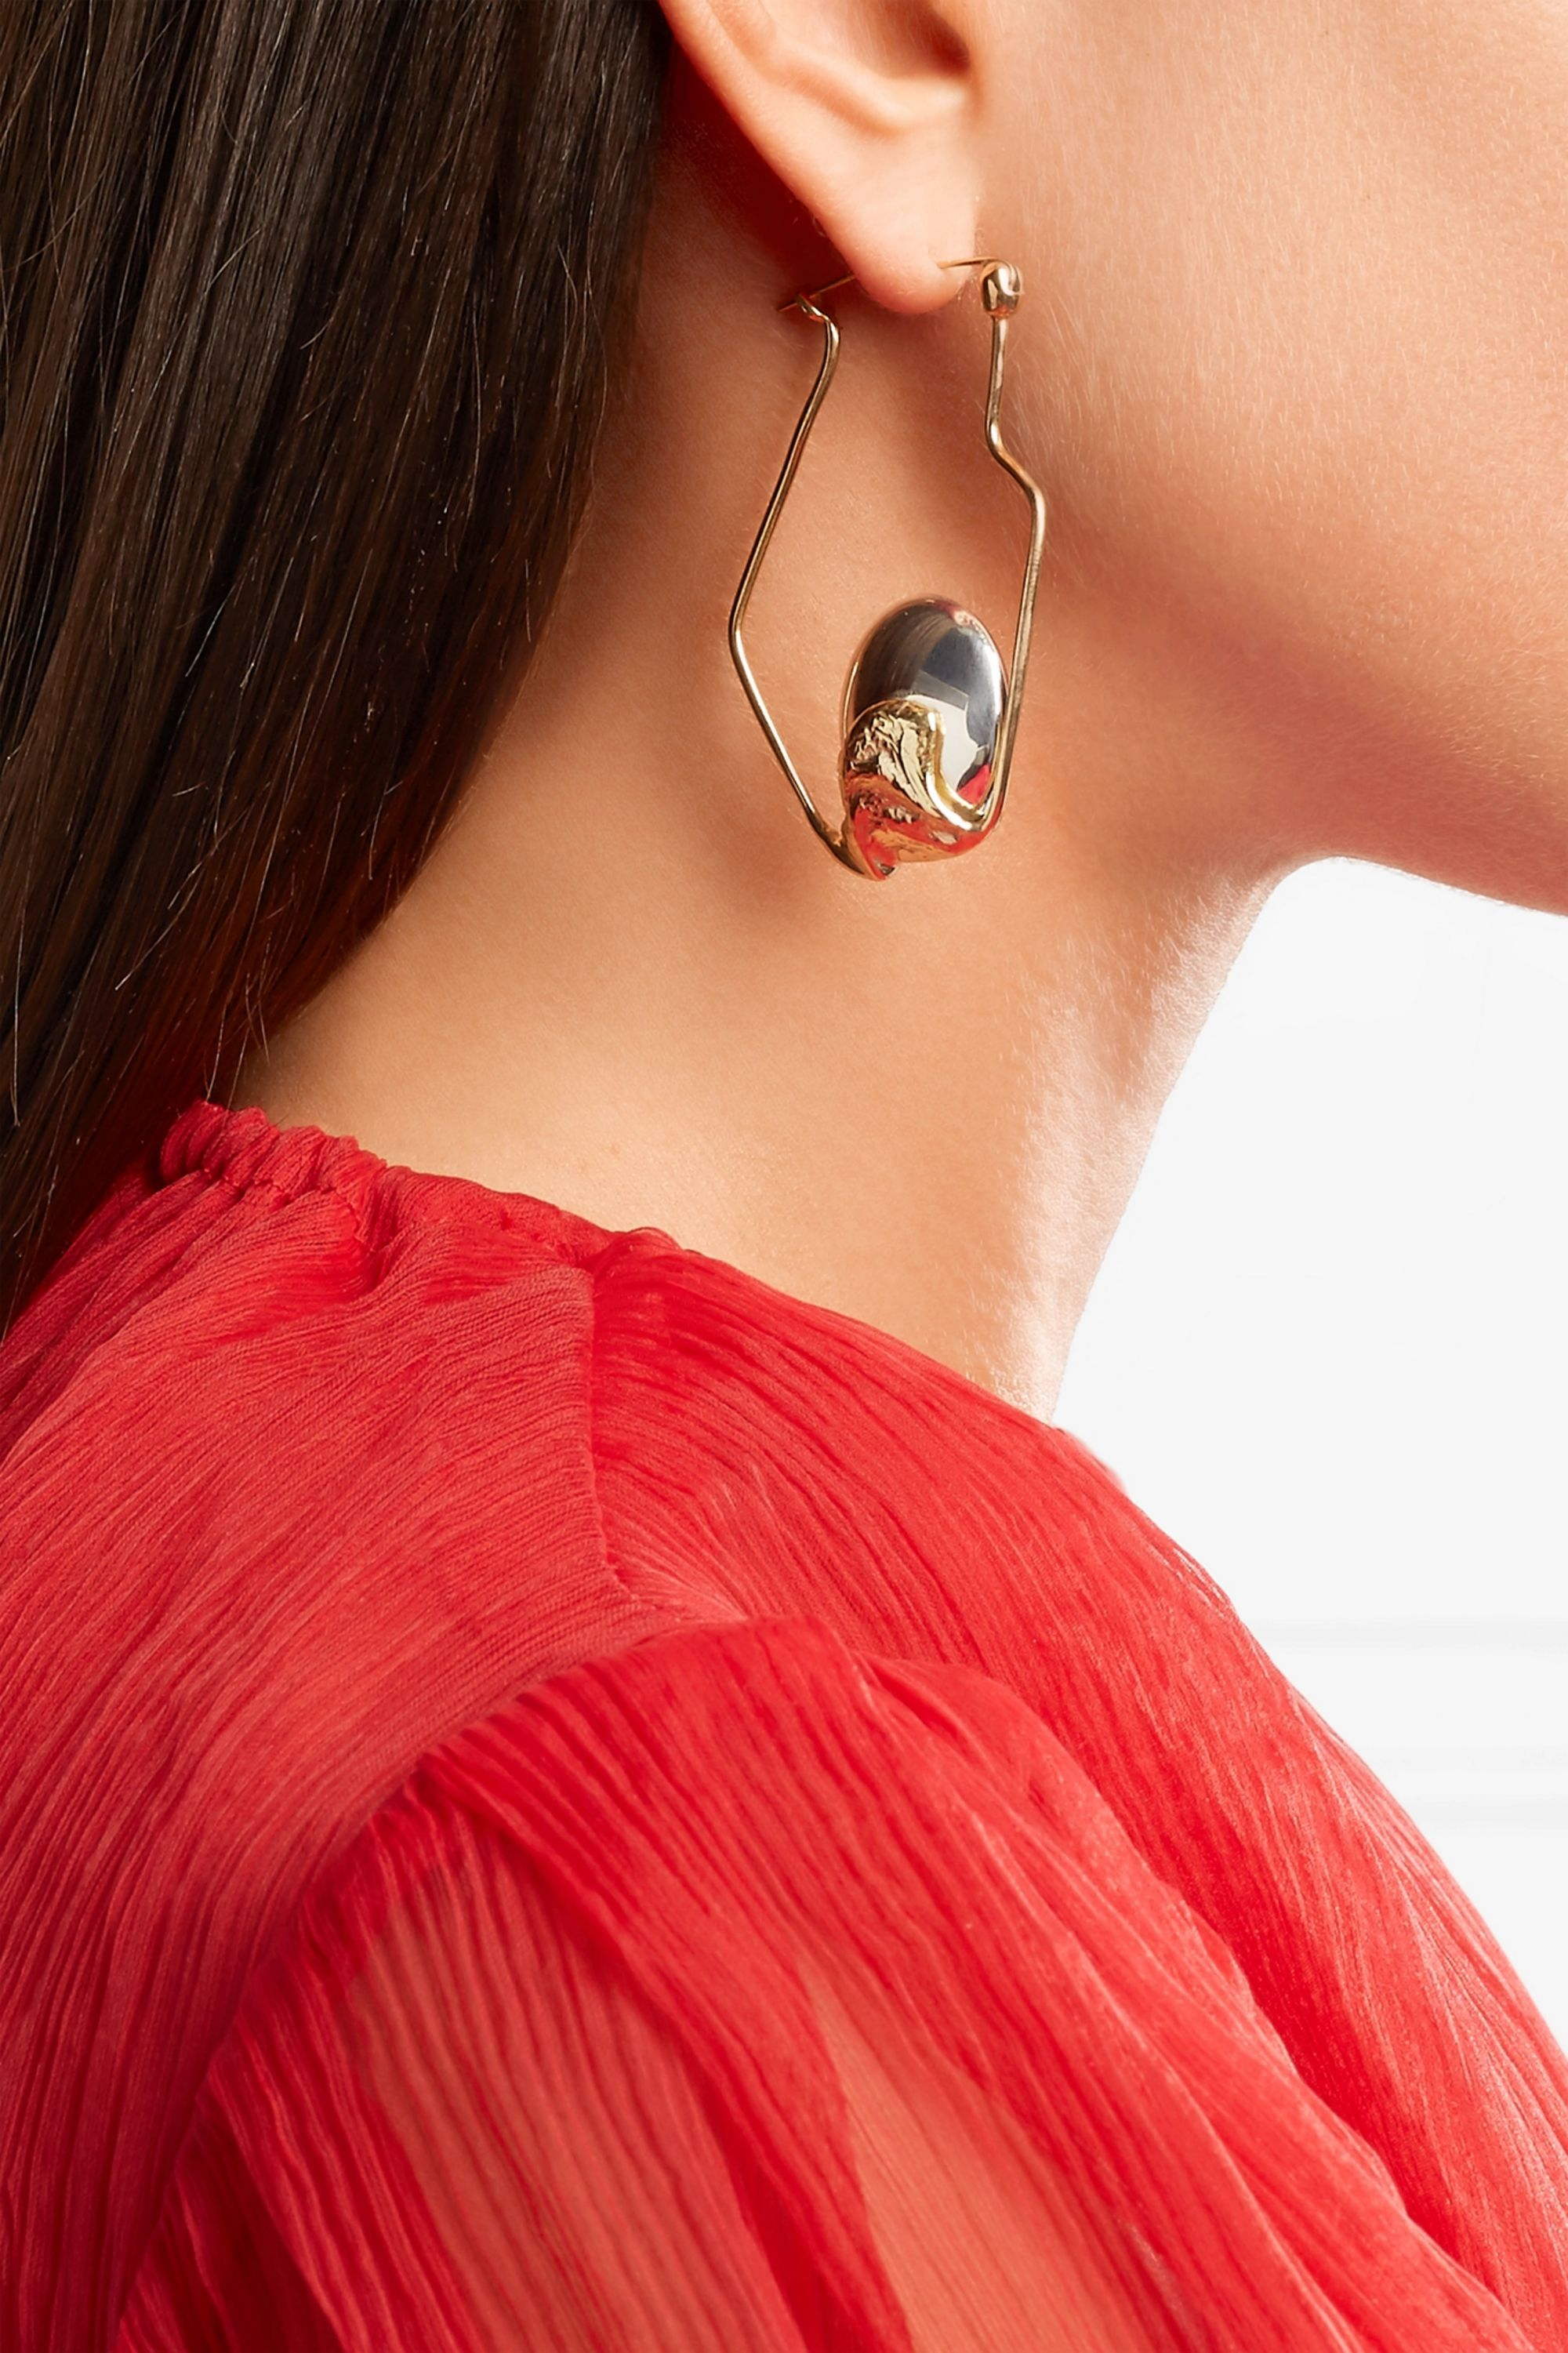 Ellery Cusp Oyster gold-plated and silver hoop earrings